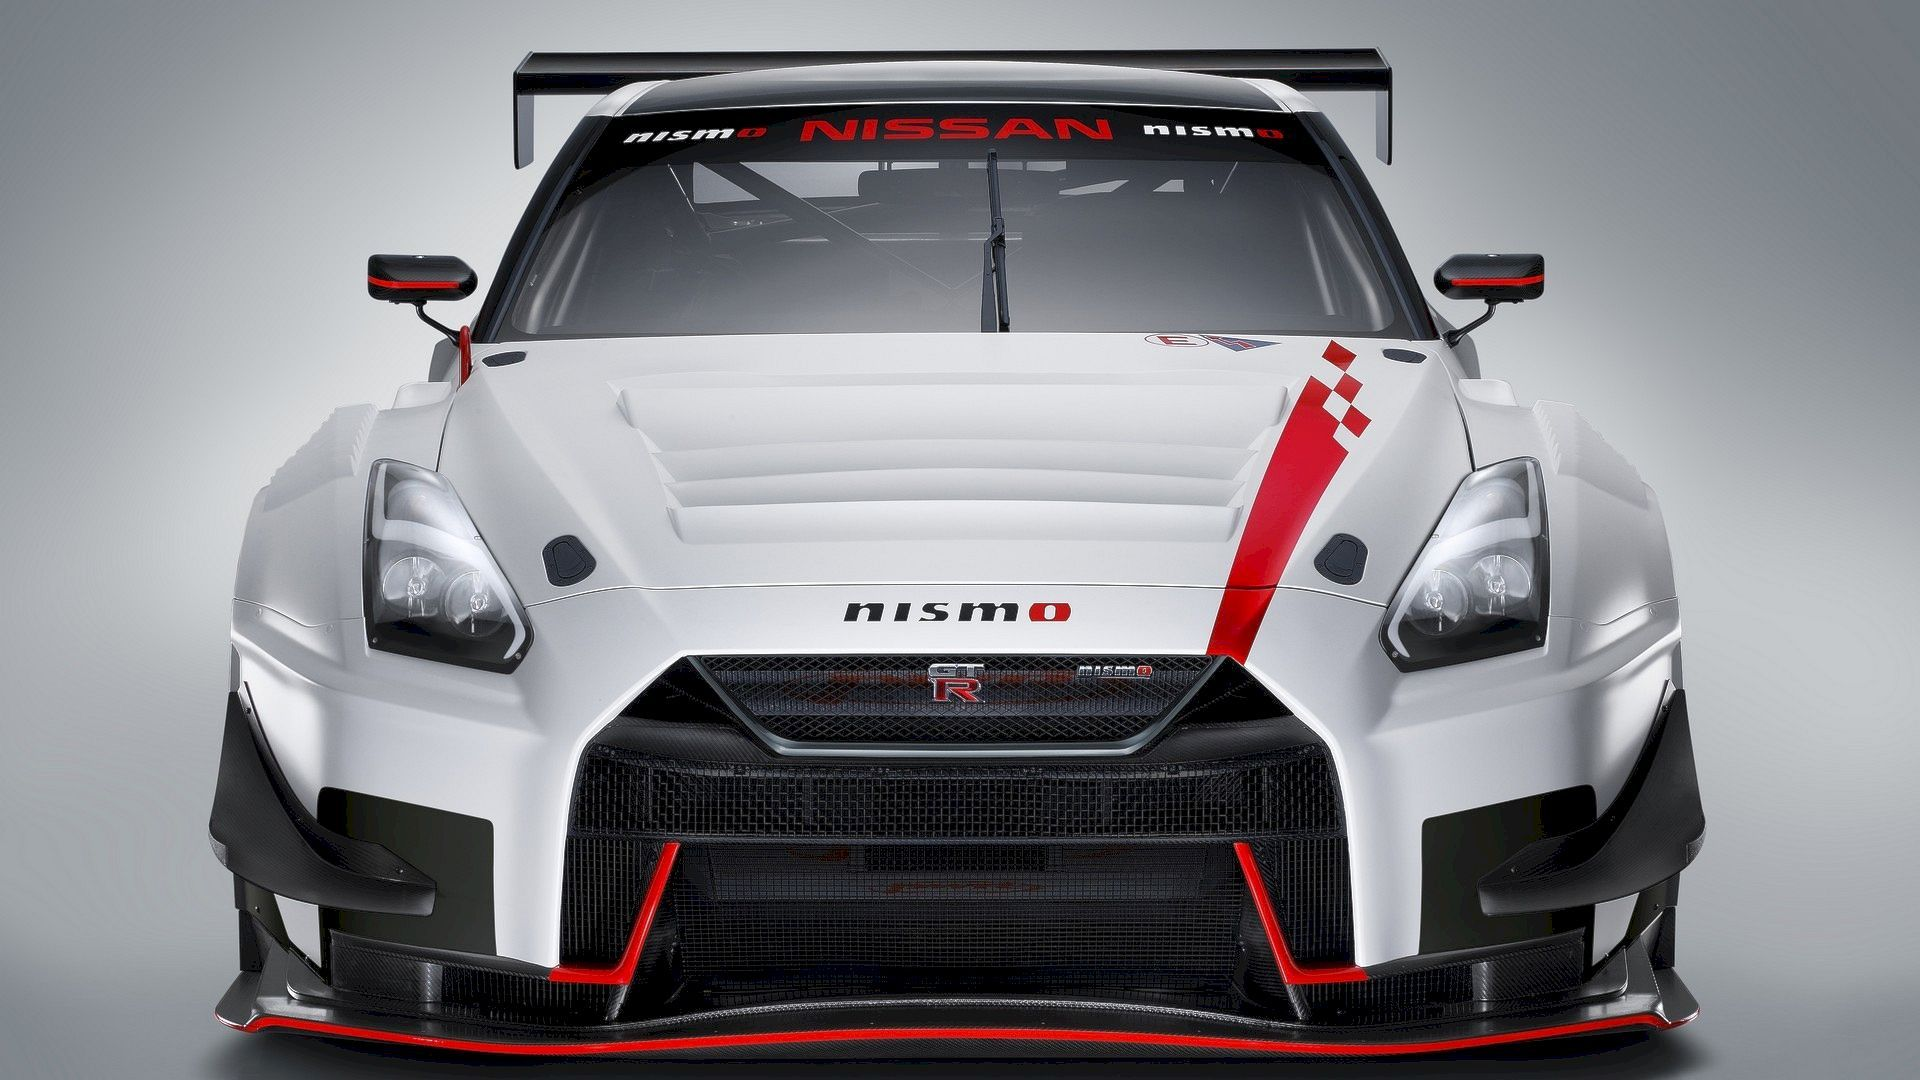 2018 Nissan Gt R Nismo Gt3 Top Of The Top Nissan Gtr Wallpapers Nissan Gt Nissan Gtr